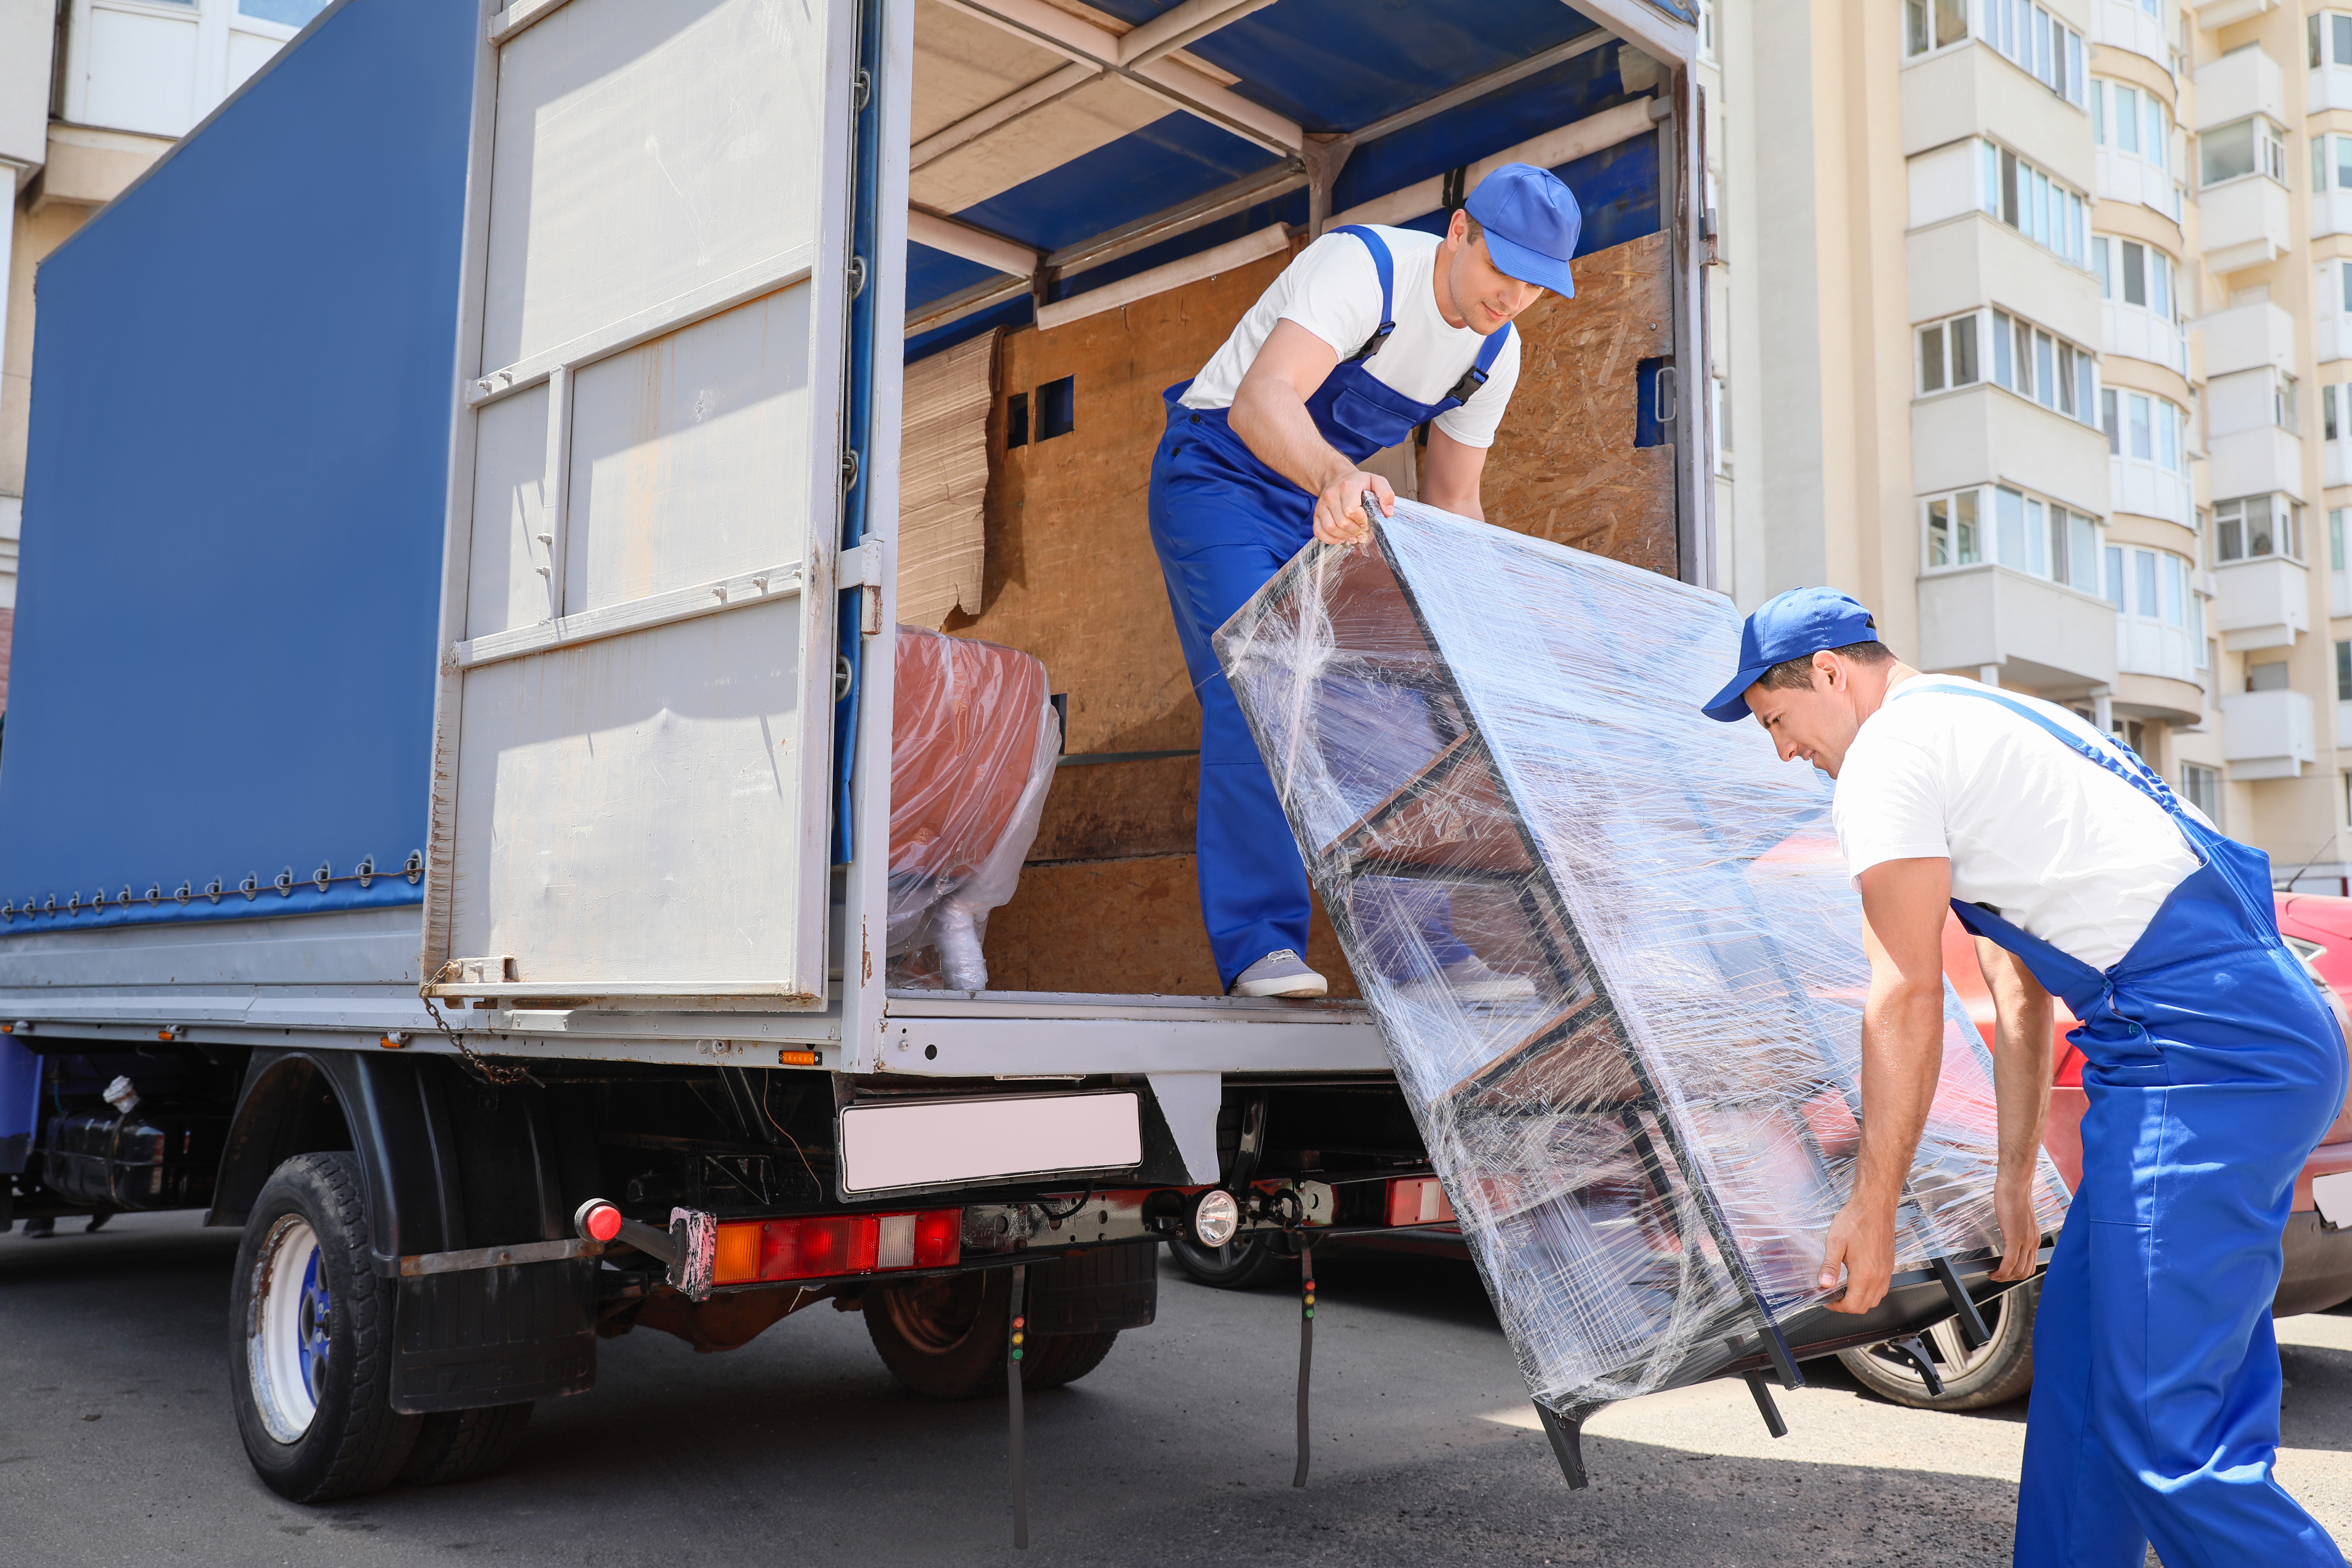 men unloading furniture from delivery truck